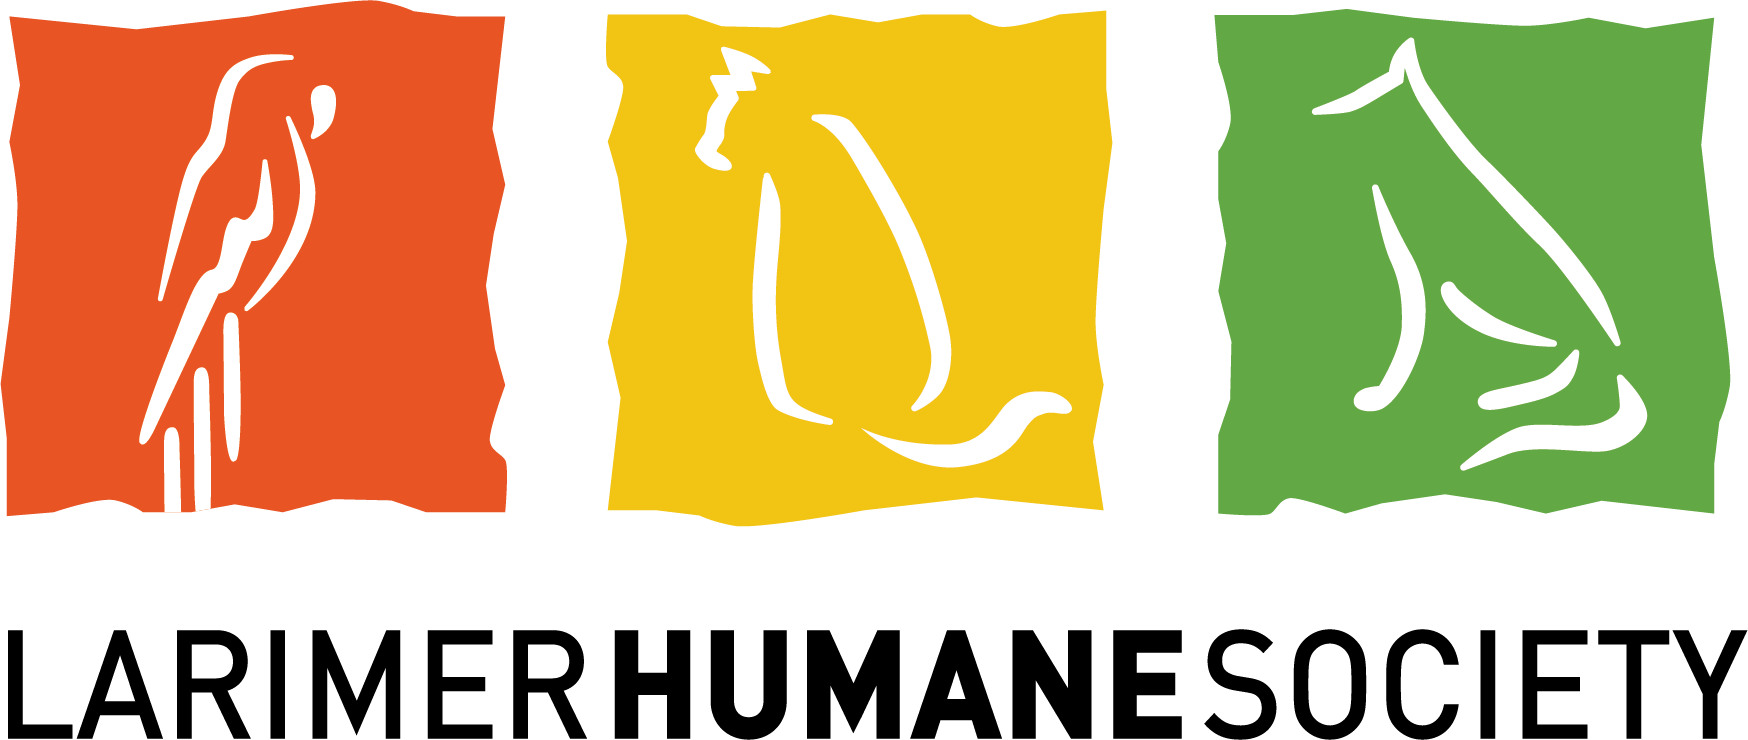 Mountain Cleaning Systems donates 1% of sales to the Larimer Humane Society